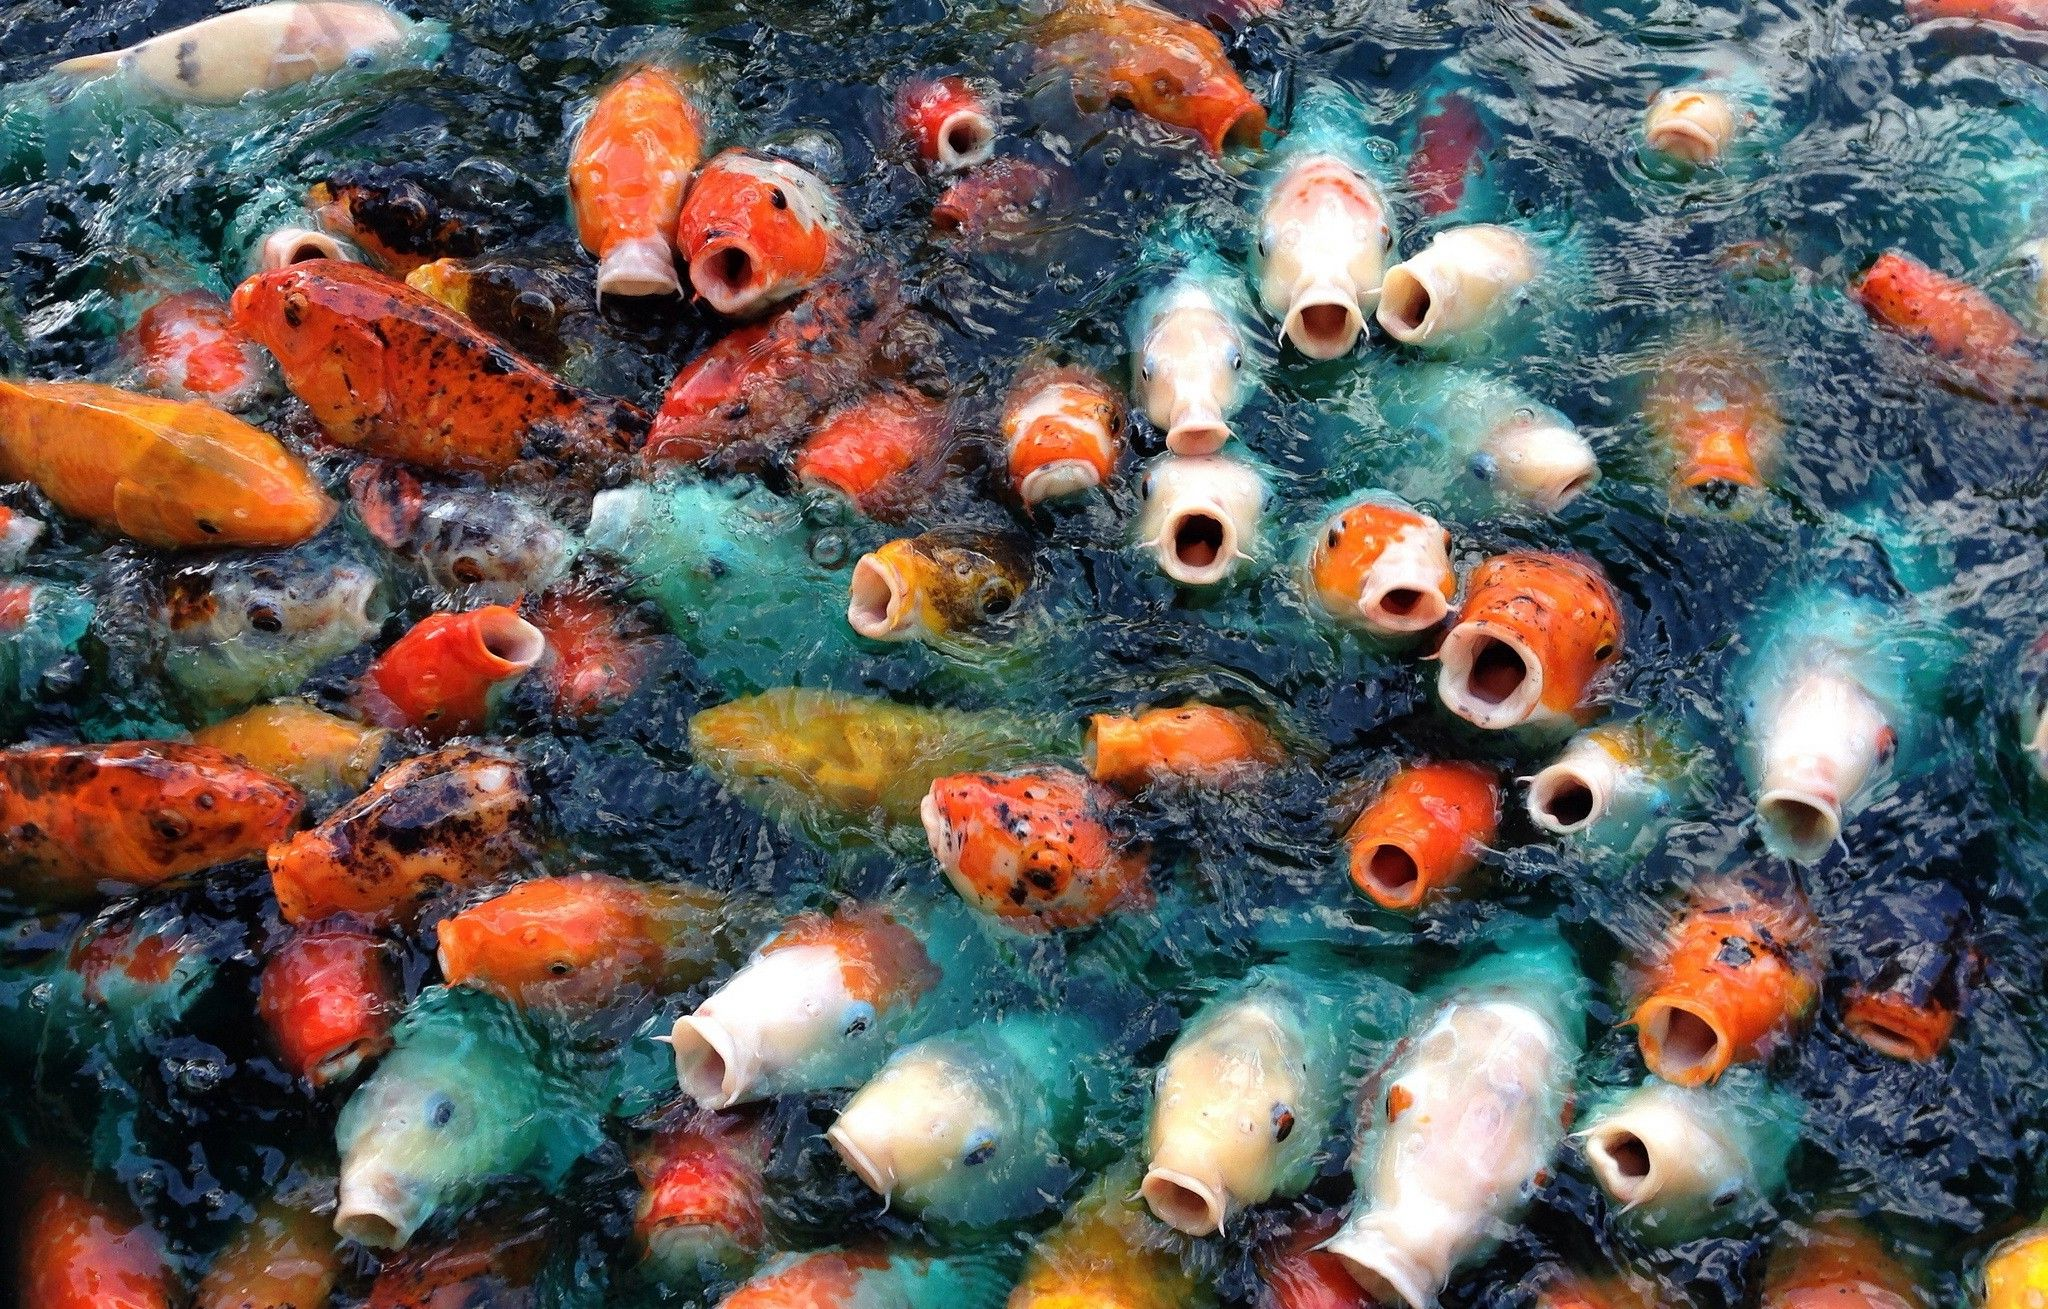 koi fish live wallpaper for android free downloadcom